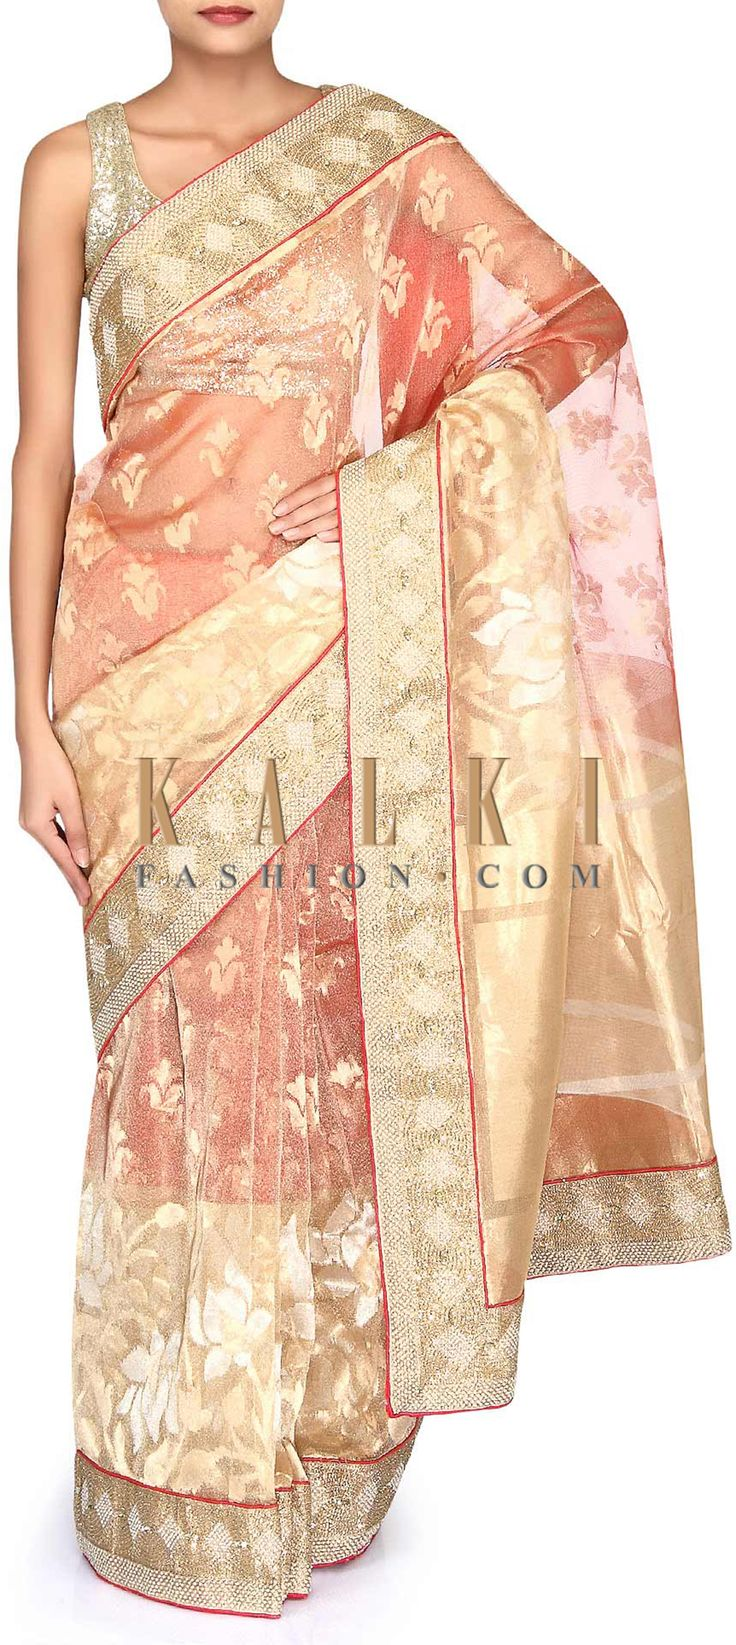 Buy Online from the link below. We ship worldwide (Free Shipping over US$100). Product SKU - 302885. Product Link - http://www.kalkifashion.com/shaded-saree-in-gold-and-red-chanderi-silk-adorn-in-embroidered-border-only-on-kalki.html